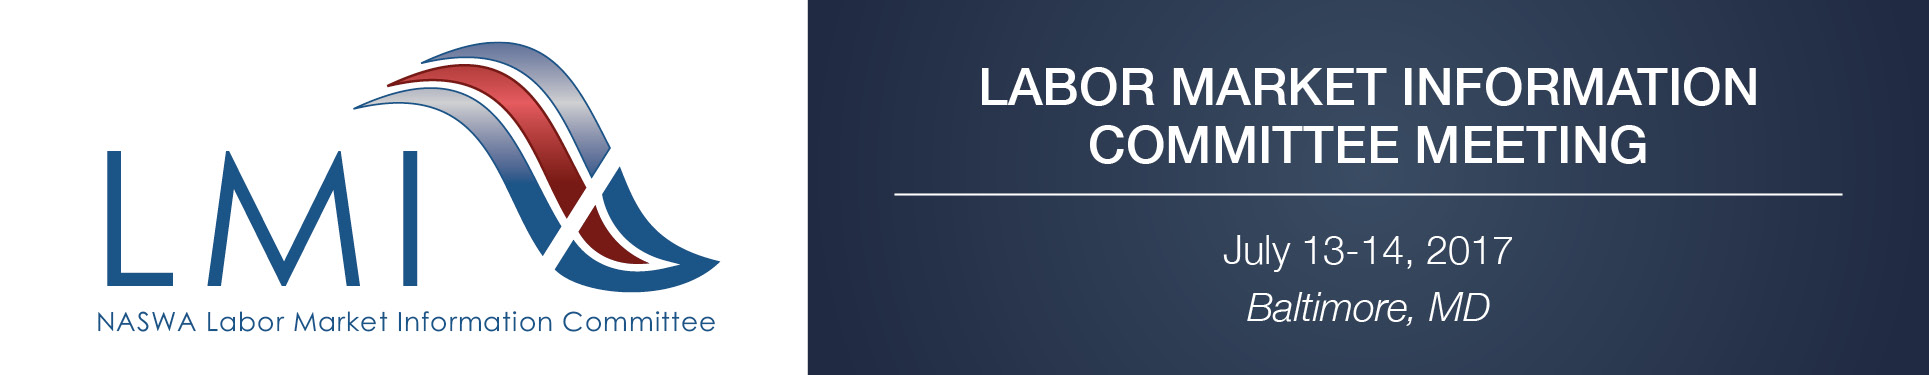 Labor Market Information Committee Meeting